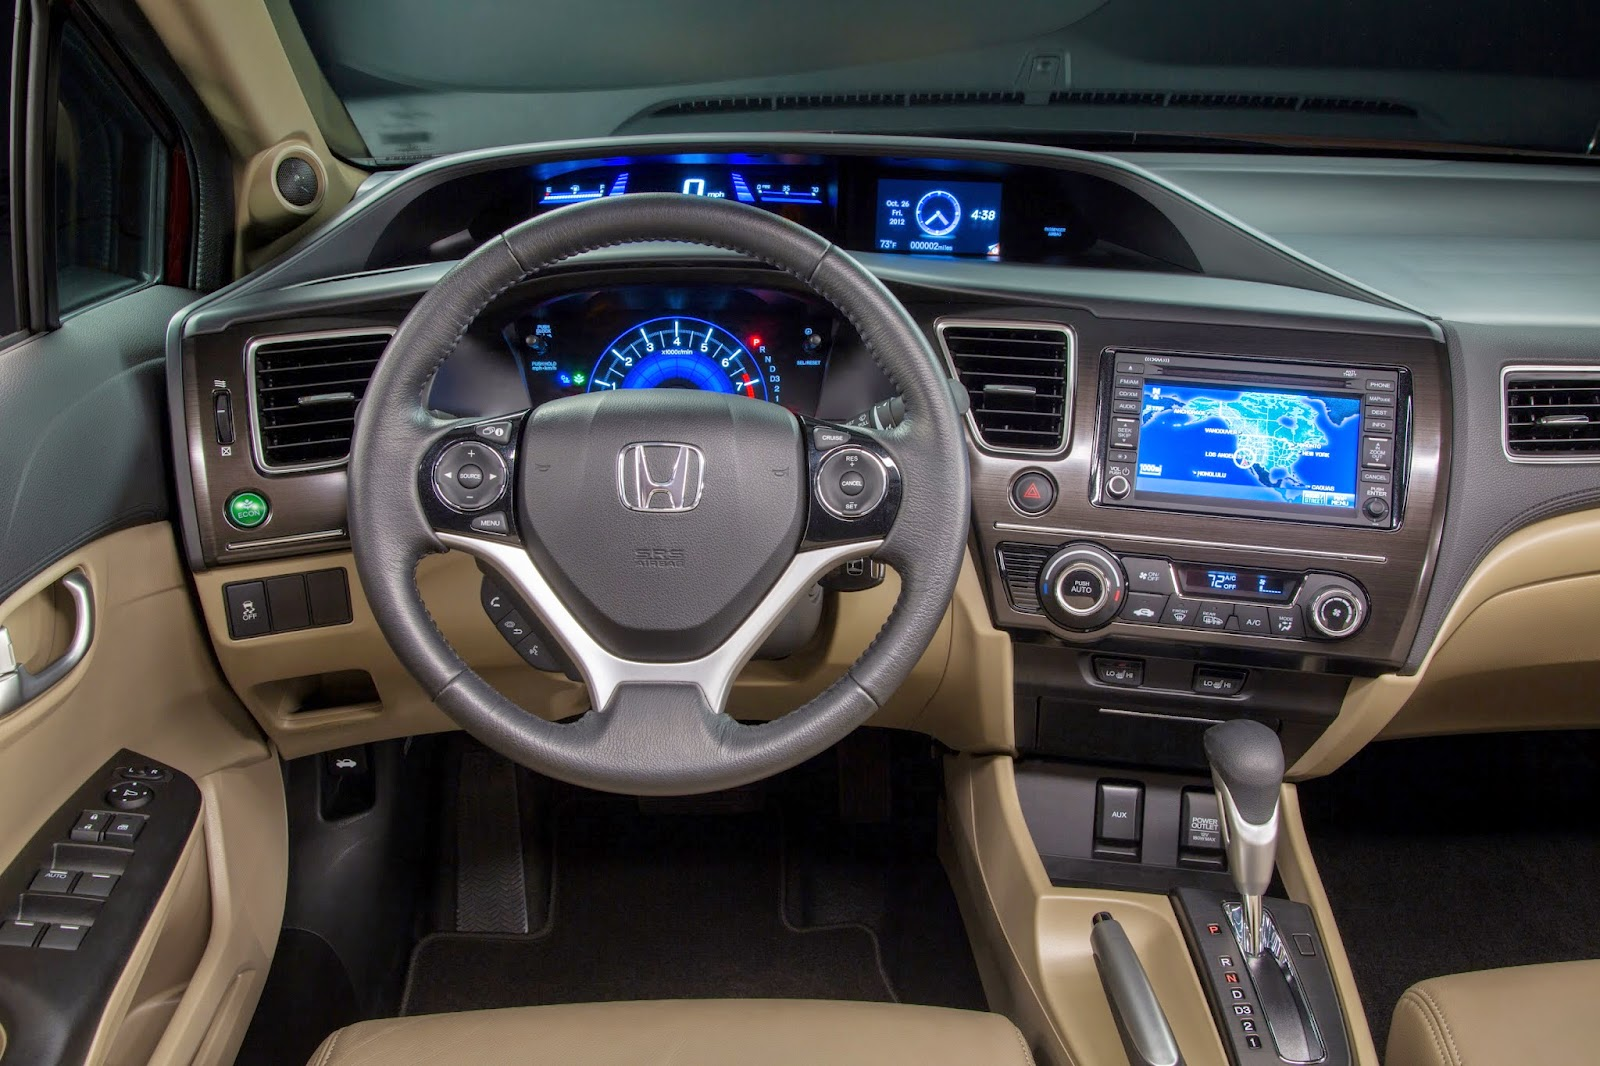 Mooiste Auto Interieur The Surprise Inside The 2015 Honda Civic Ex L Sedan